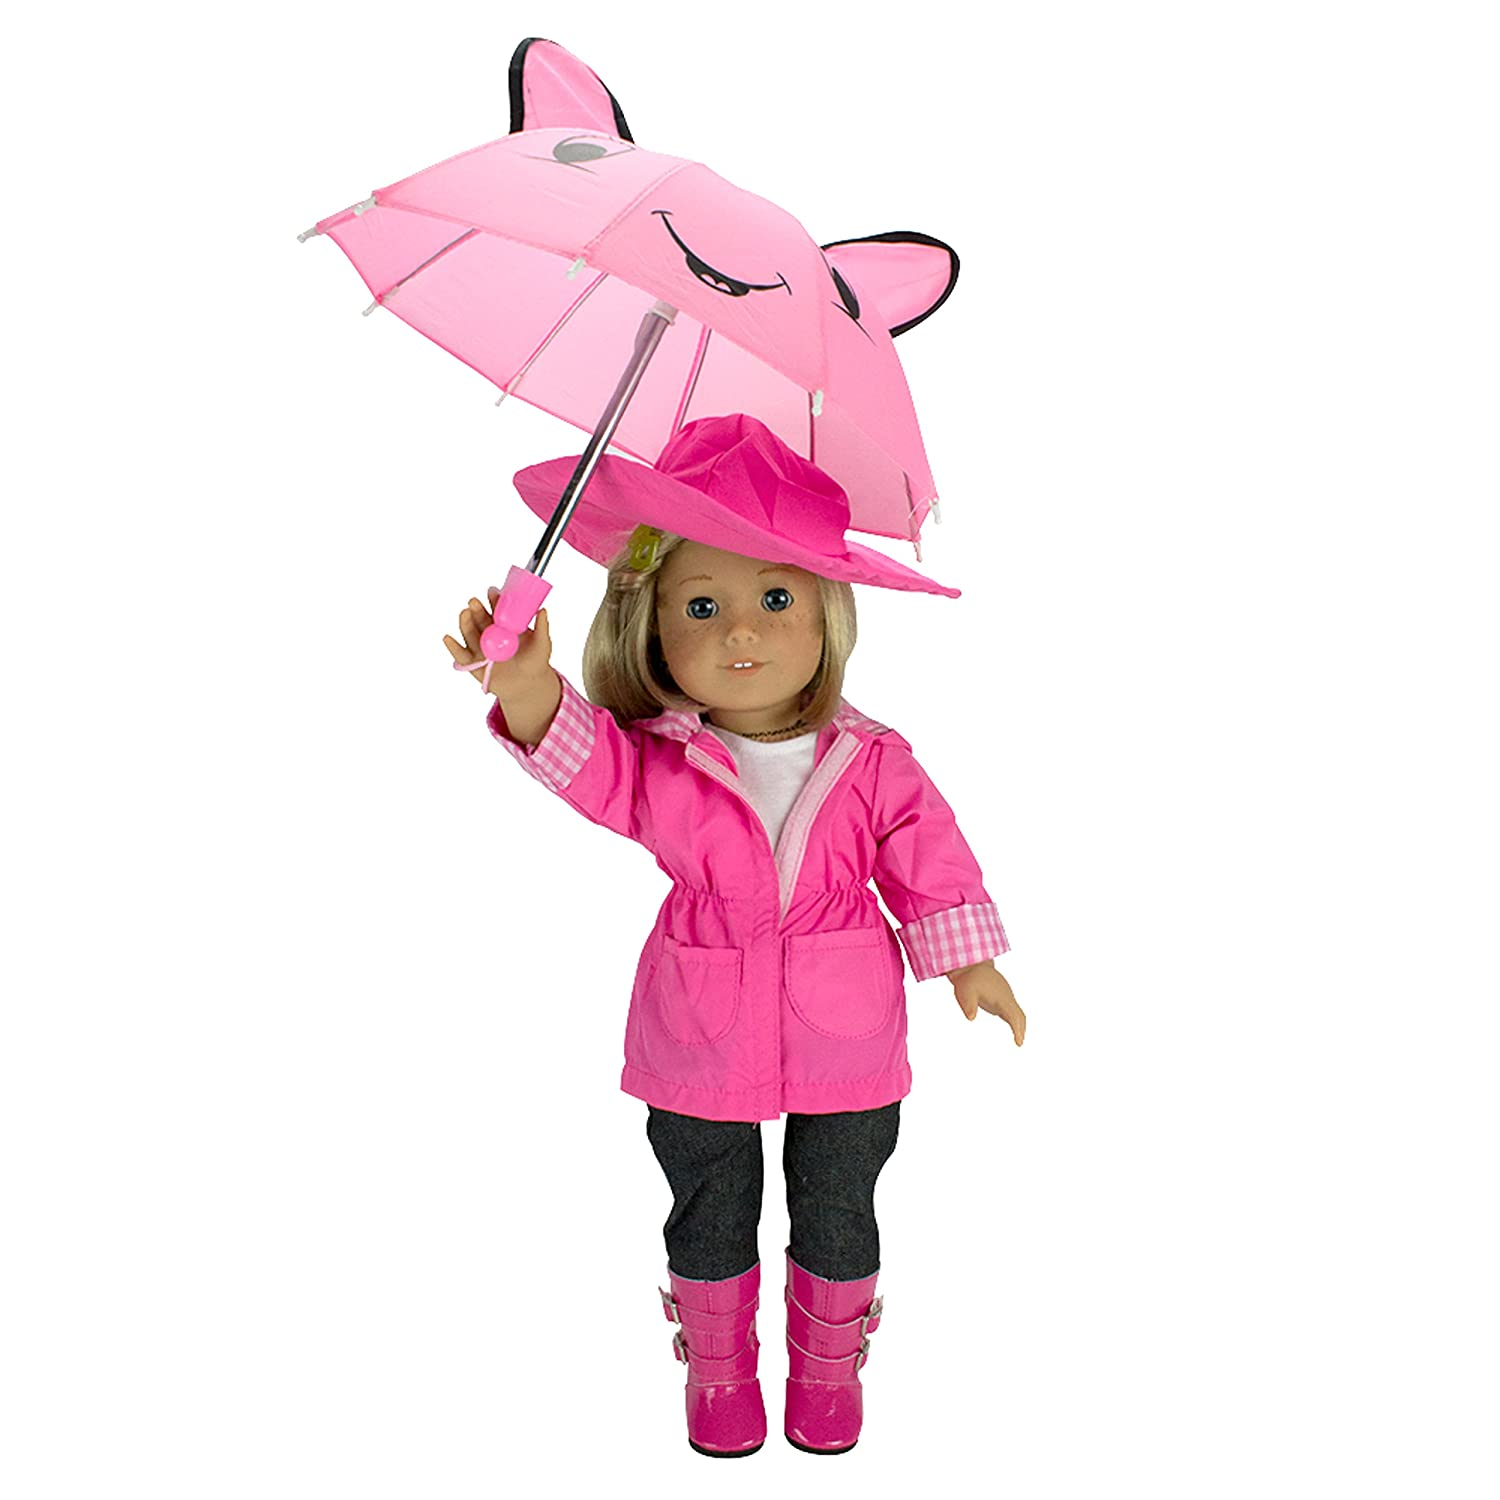 Dress Along Dolly Rain Coat Doll Clothes for American Girl Dolls:- Includes Rain Jacket, Umbrella, Boots, Hat, Pants, and Shirt